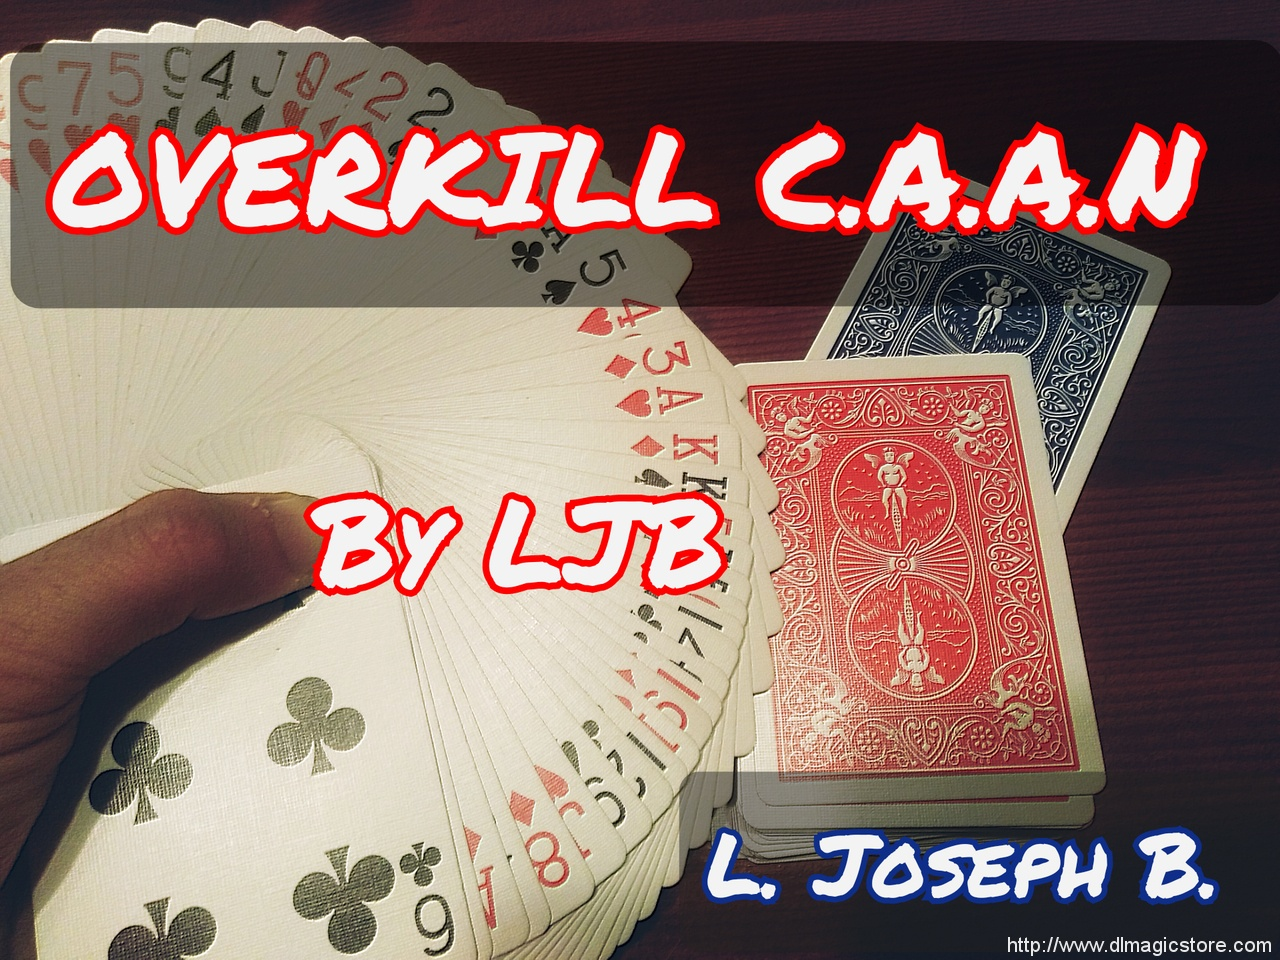 OVERKILL C.A.A.N By Joseph B. (Instant Download)